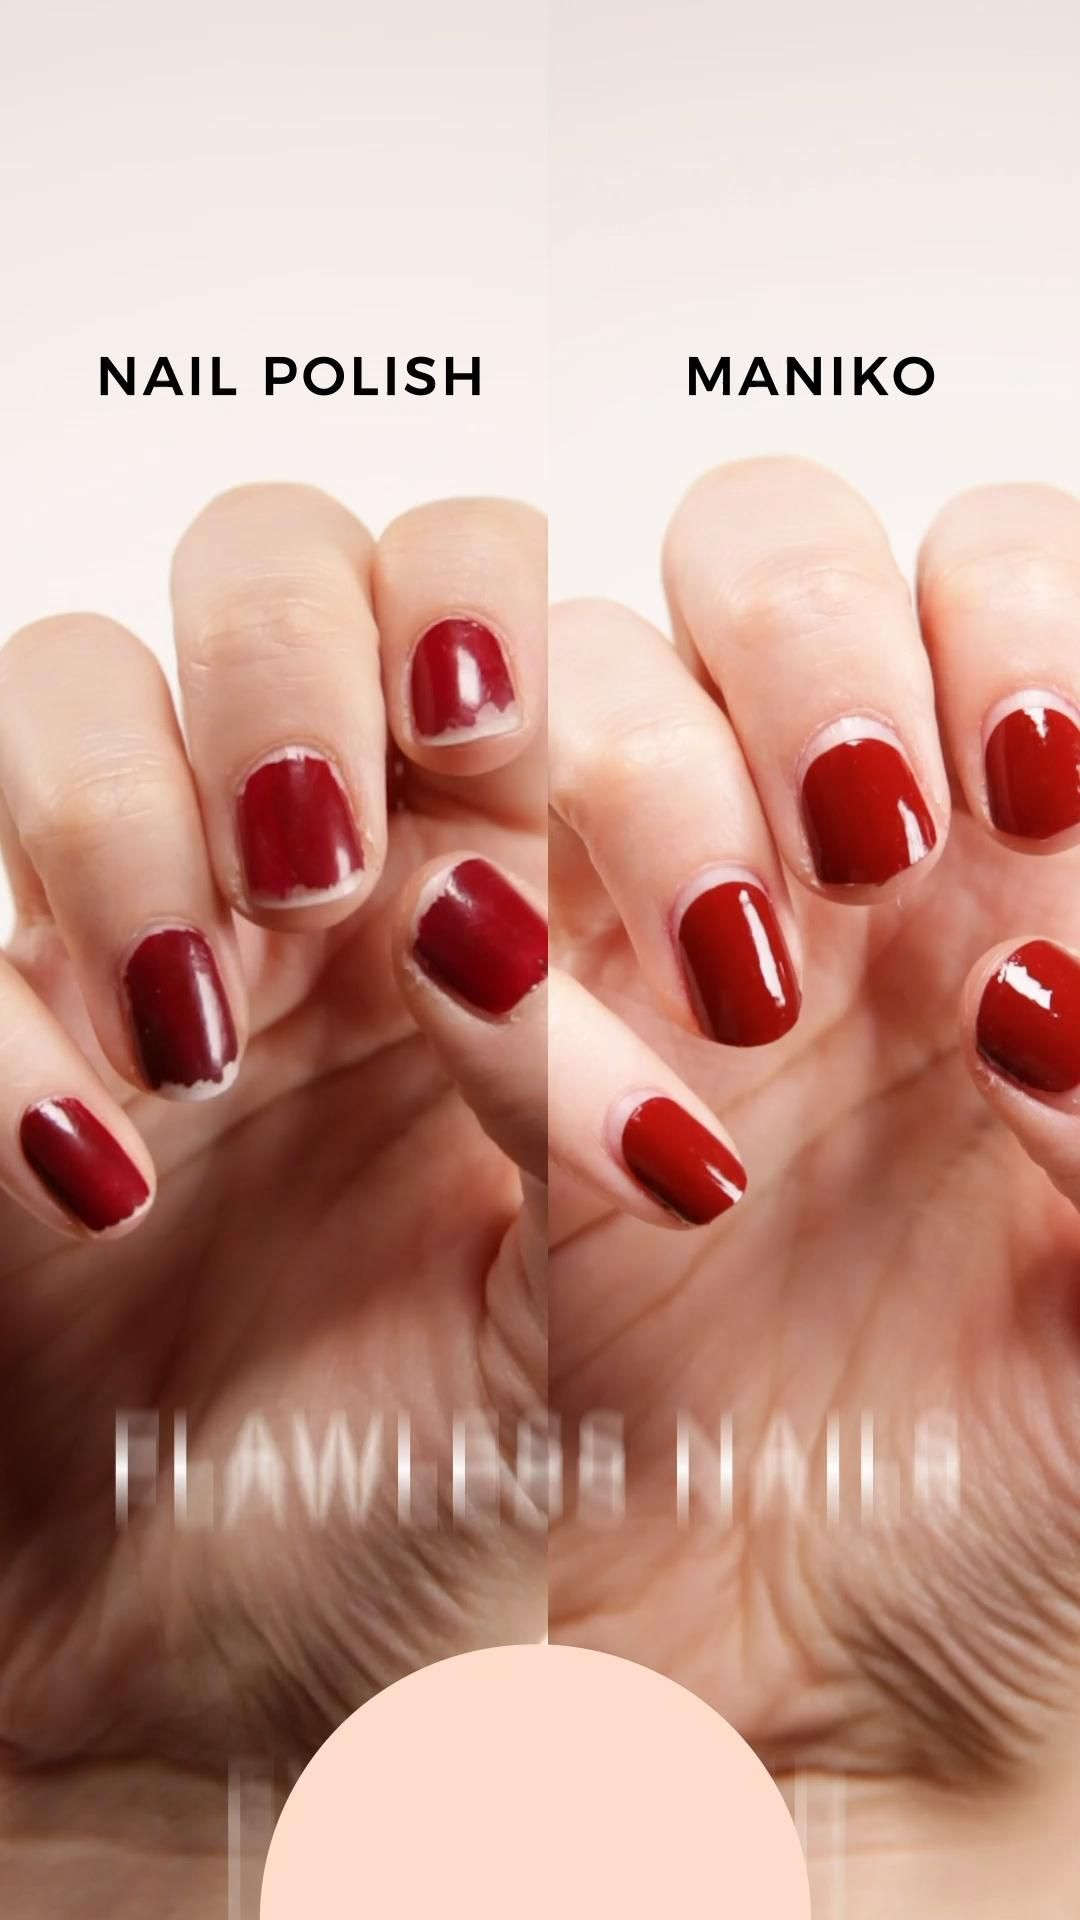 Flawless Nails for 10 Days